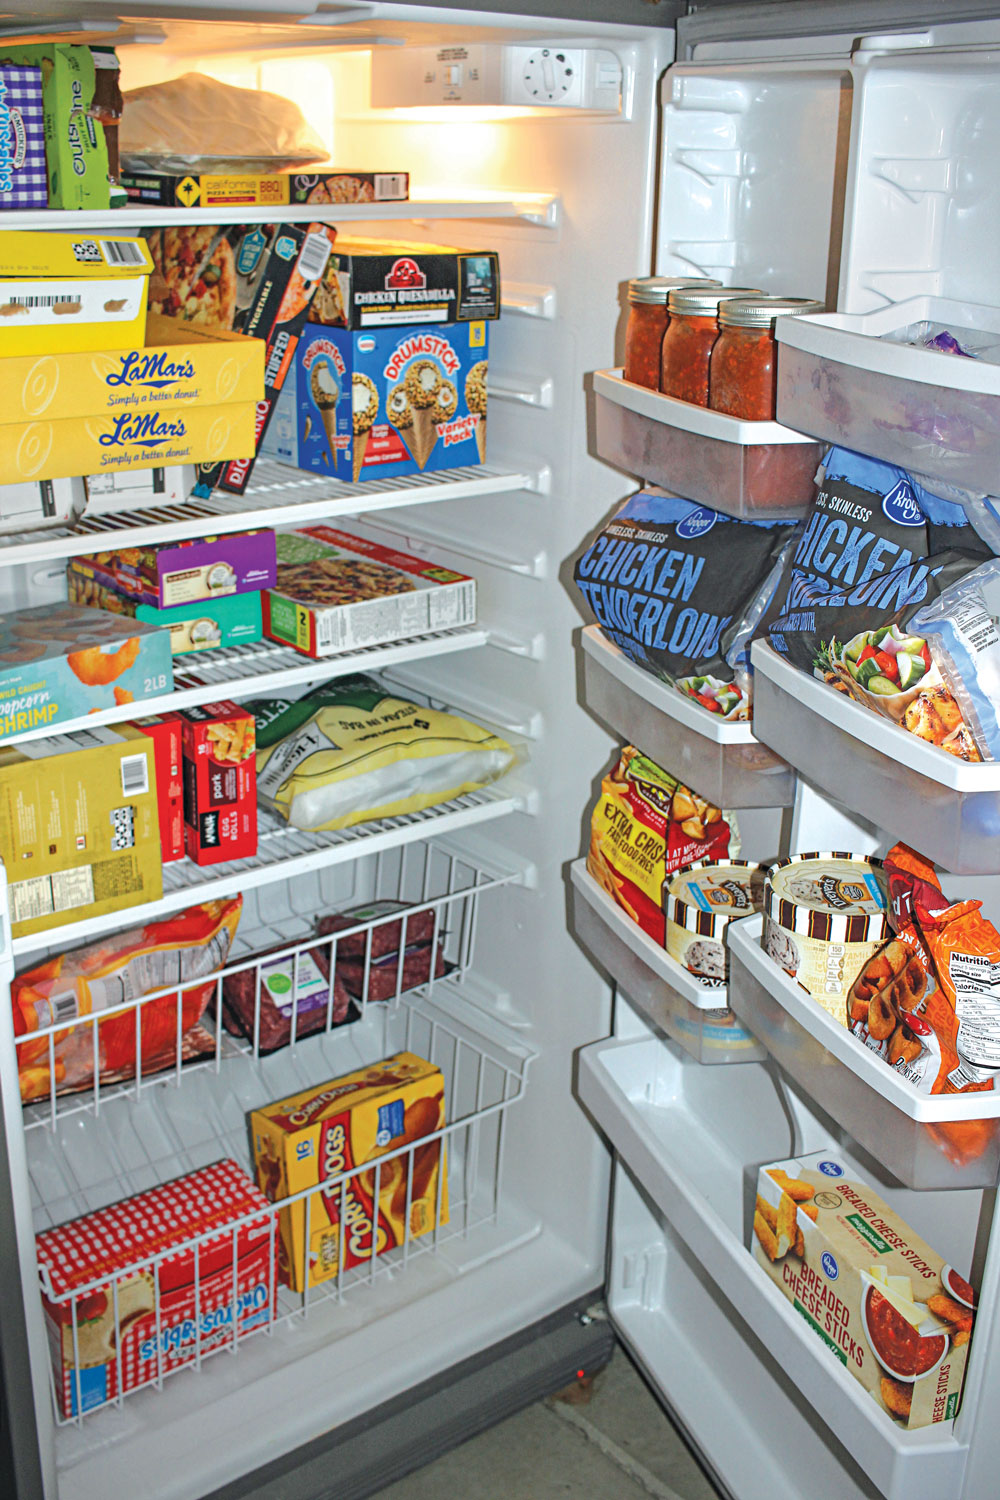 With the food supply possibly struggling, the author's family loaded up on frozen items so they'd have a buffer.